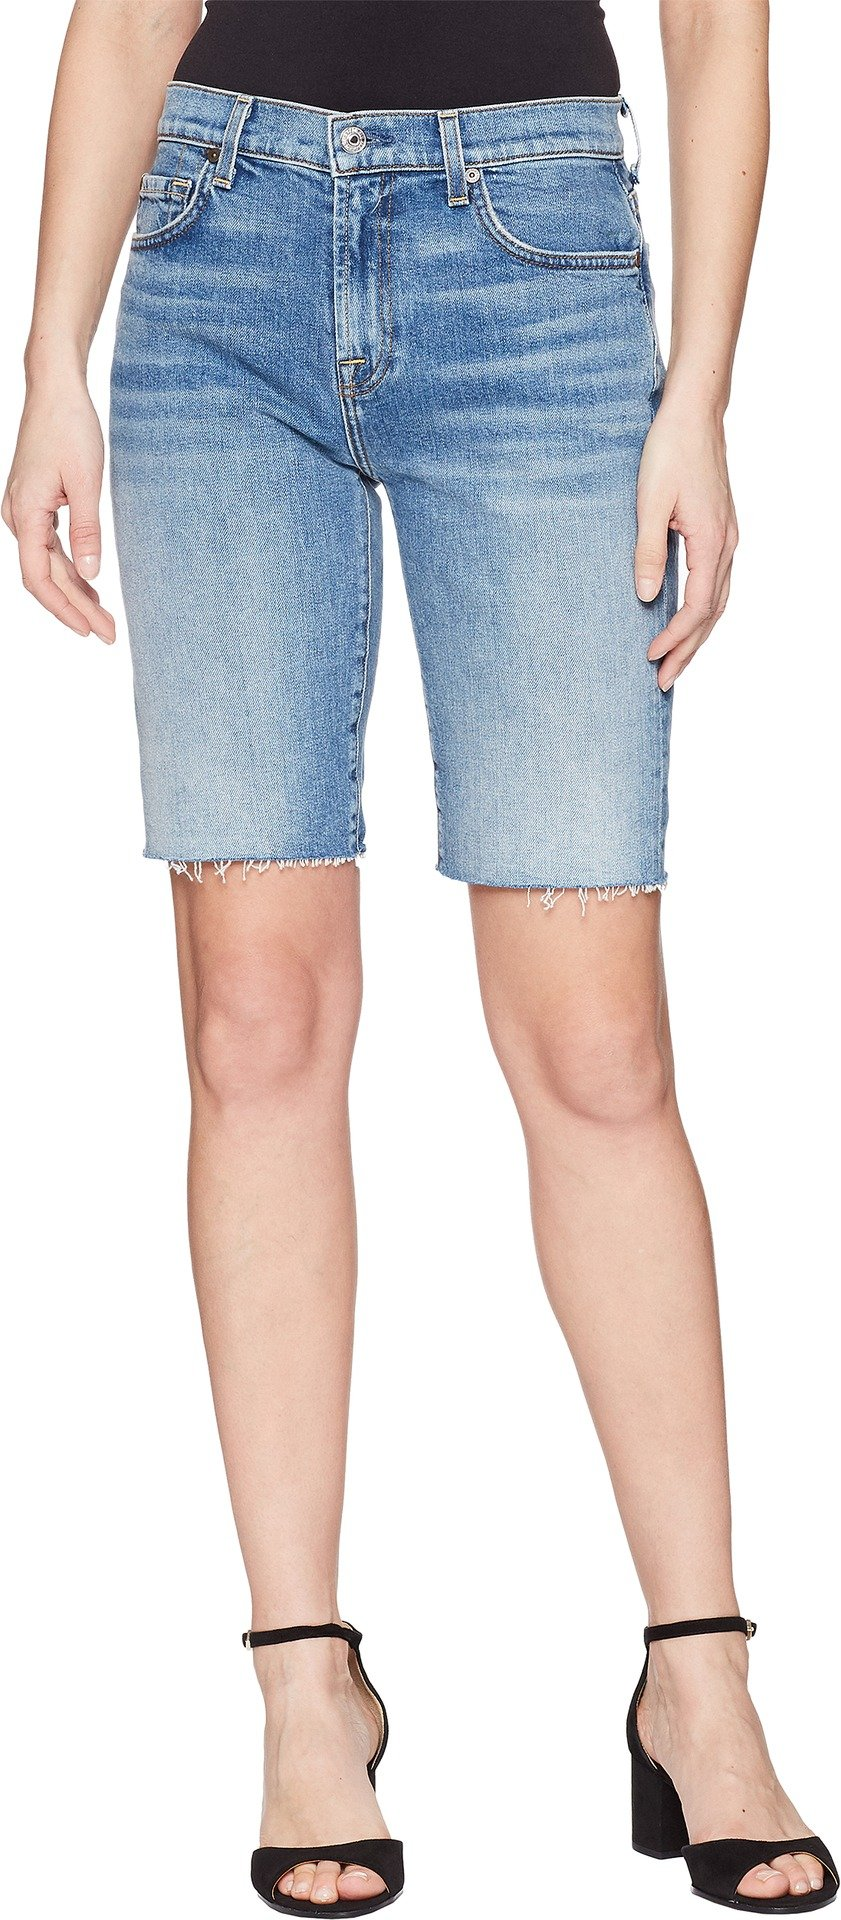 7 For All Mankind Women's High Waist Bermuda Shorts, Desert Oasis, 26